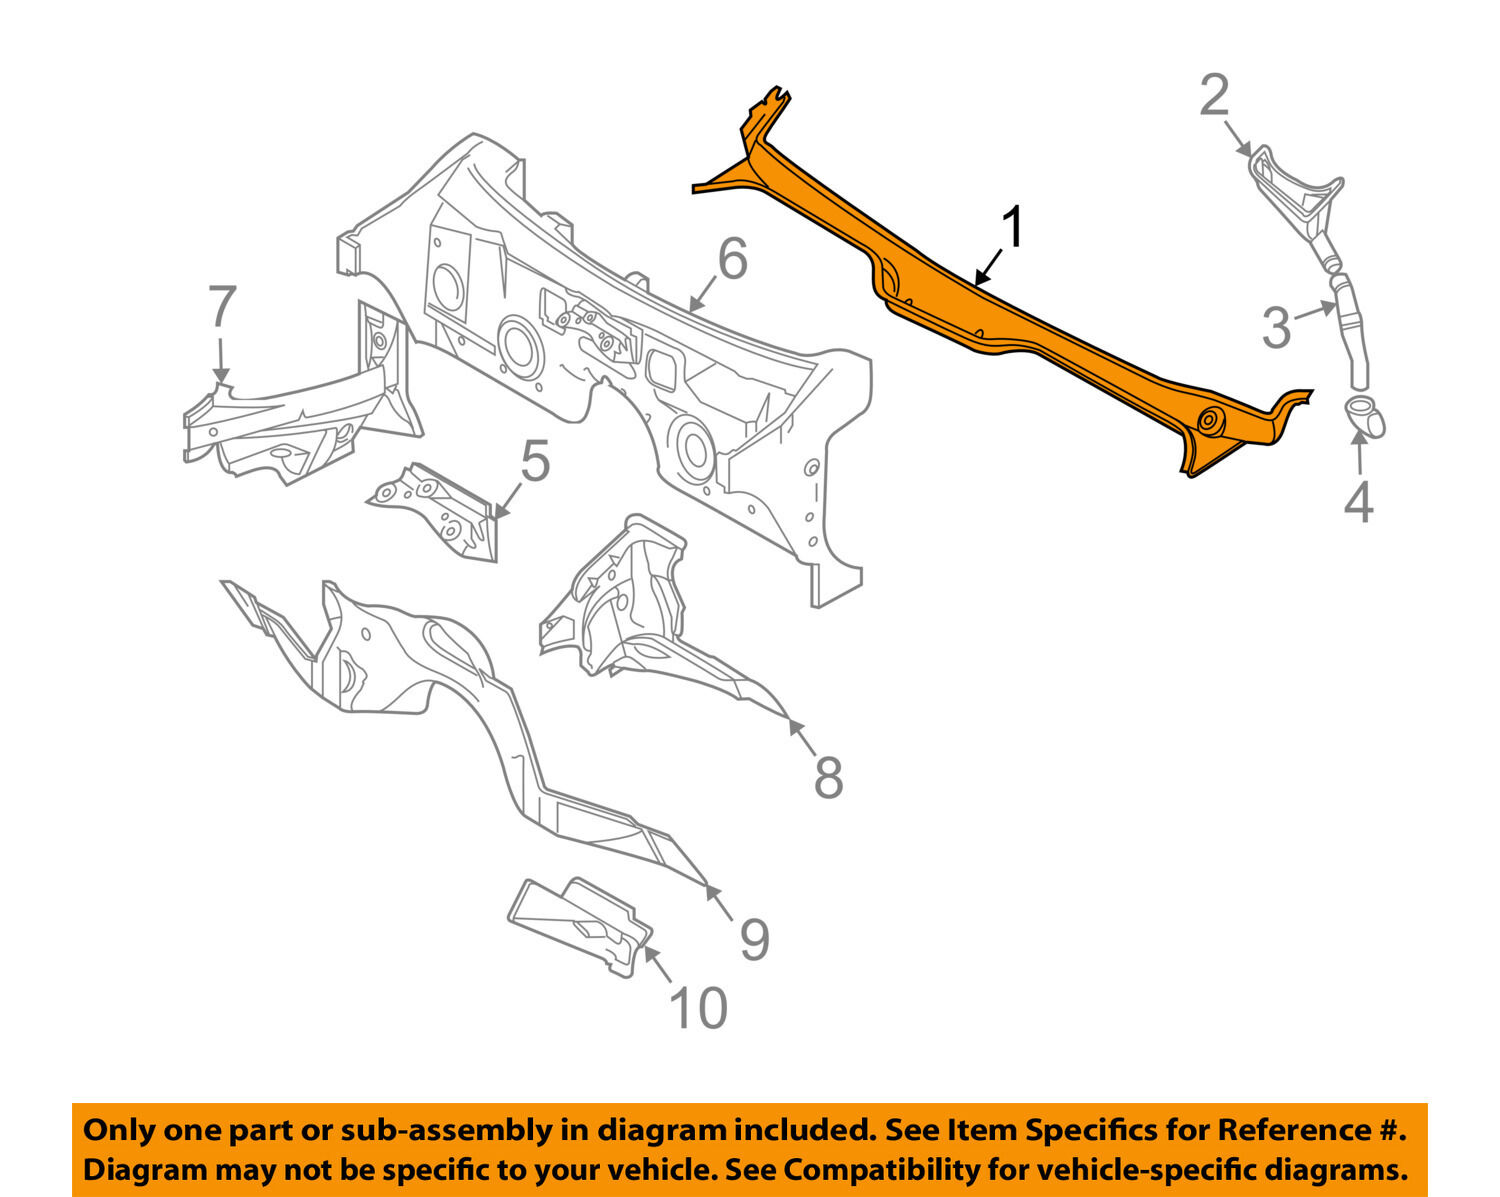 Bmw Oem 03 08 760li Cowl Panel Windshield Wiper Motor Cover V12 Engine Diagram 51717065284 1 Of 2only Available